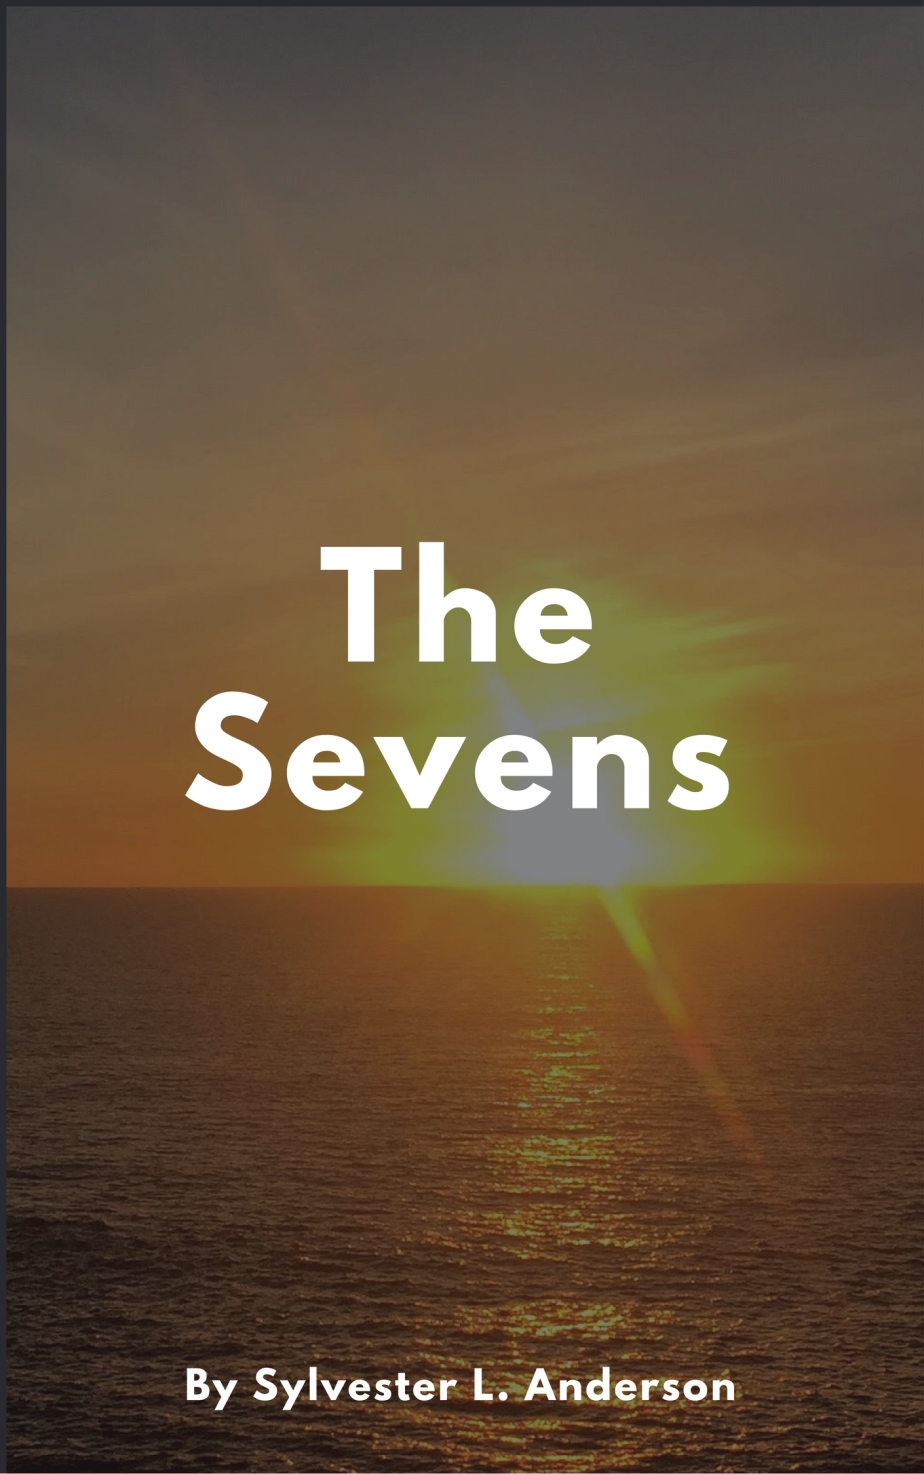 The Sevens